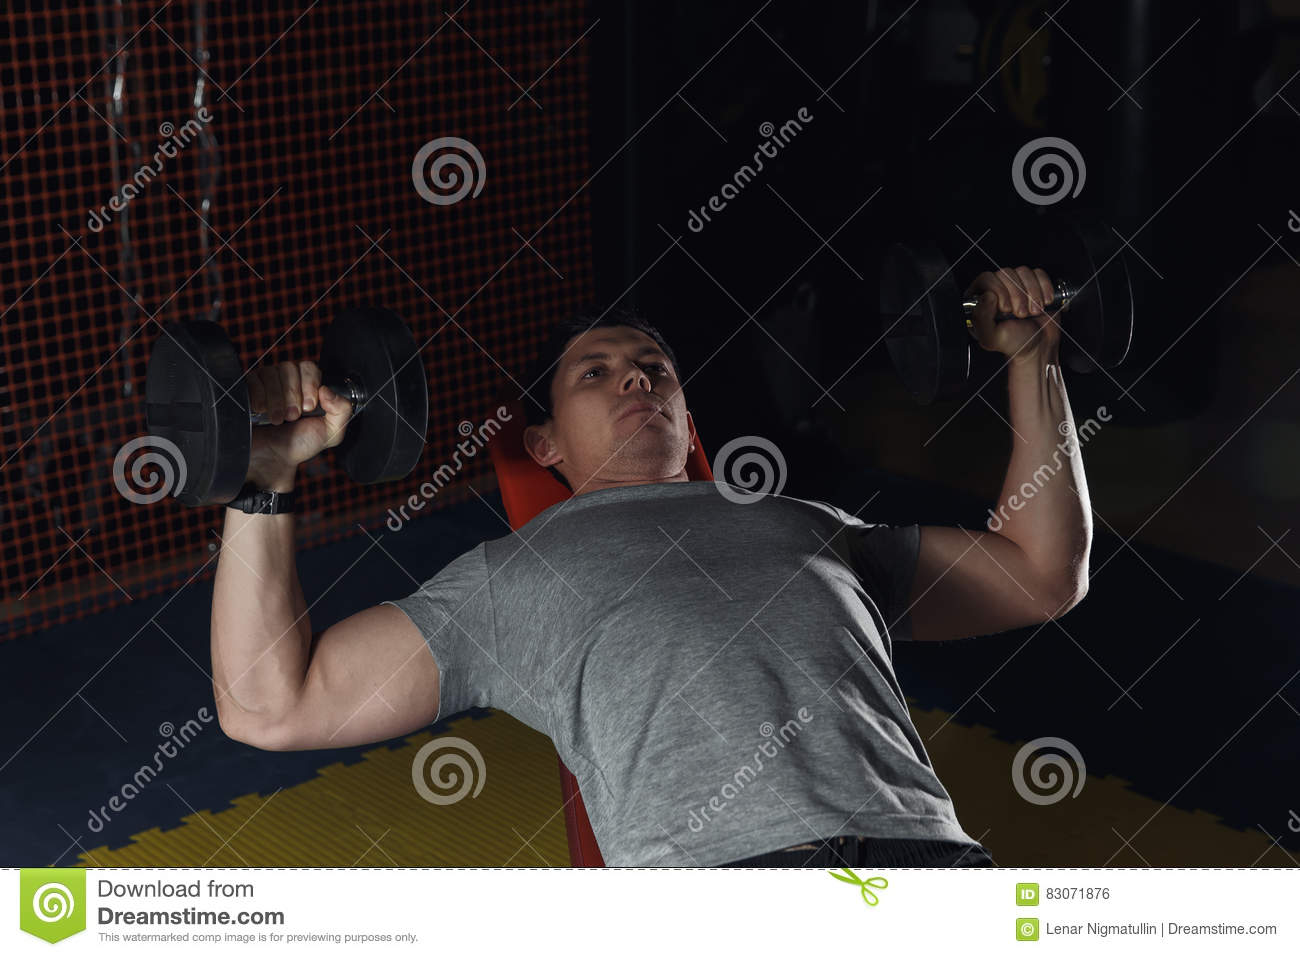 Mature Men Doing Dumbbell Incline Bench Press Workout In Gym Stock